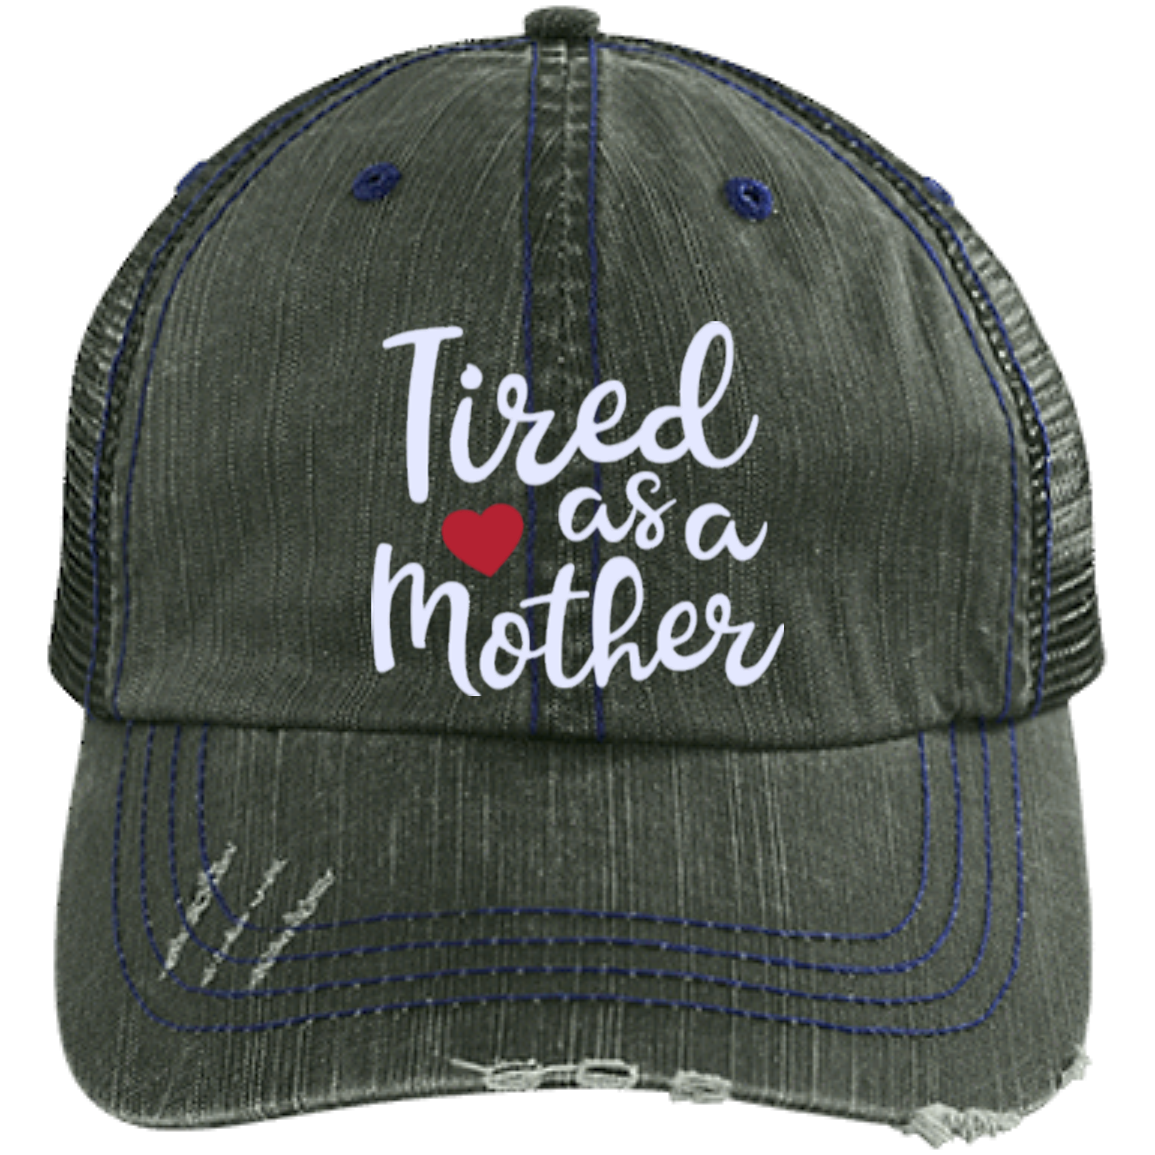 a42b09ba9 Distressed Trucker Cap - Tired as a Mother   Products   Hats, Cap ...